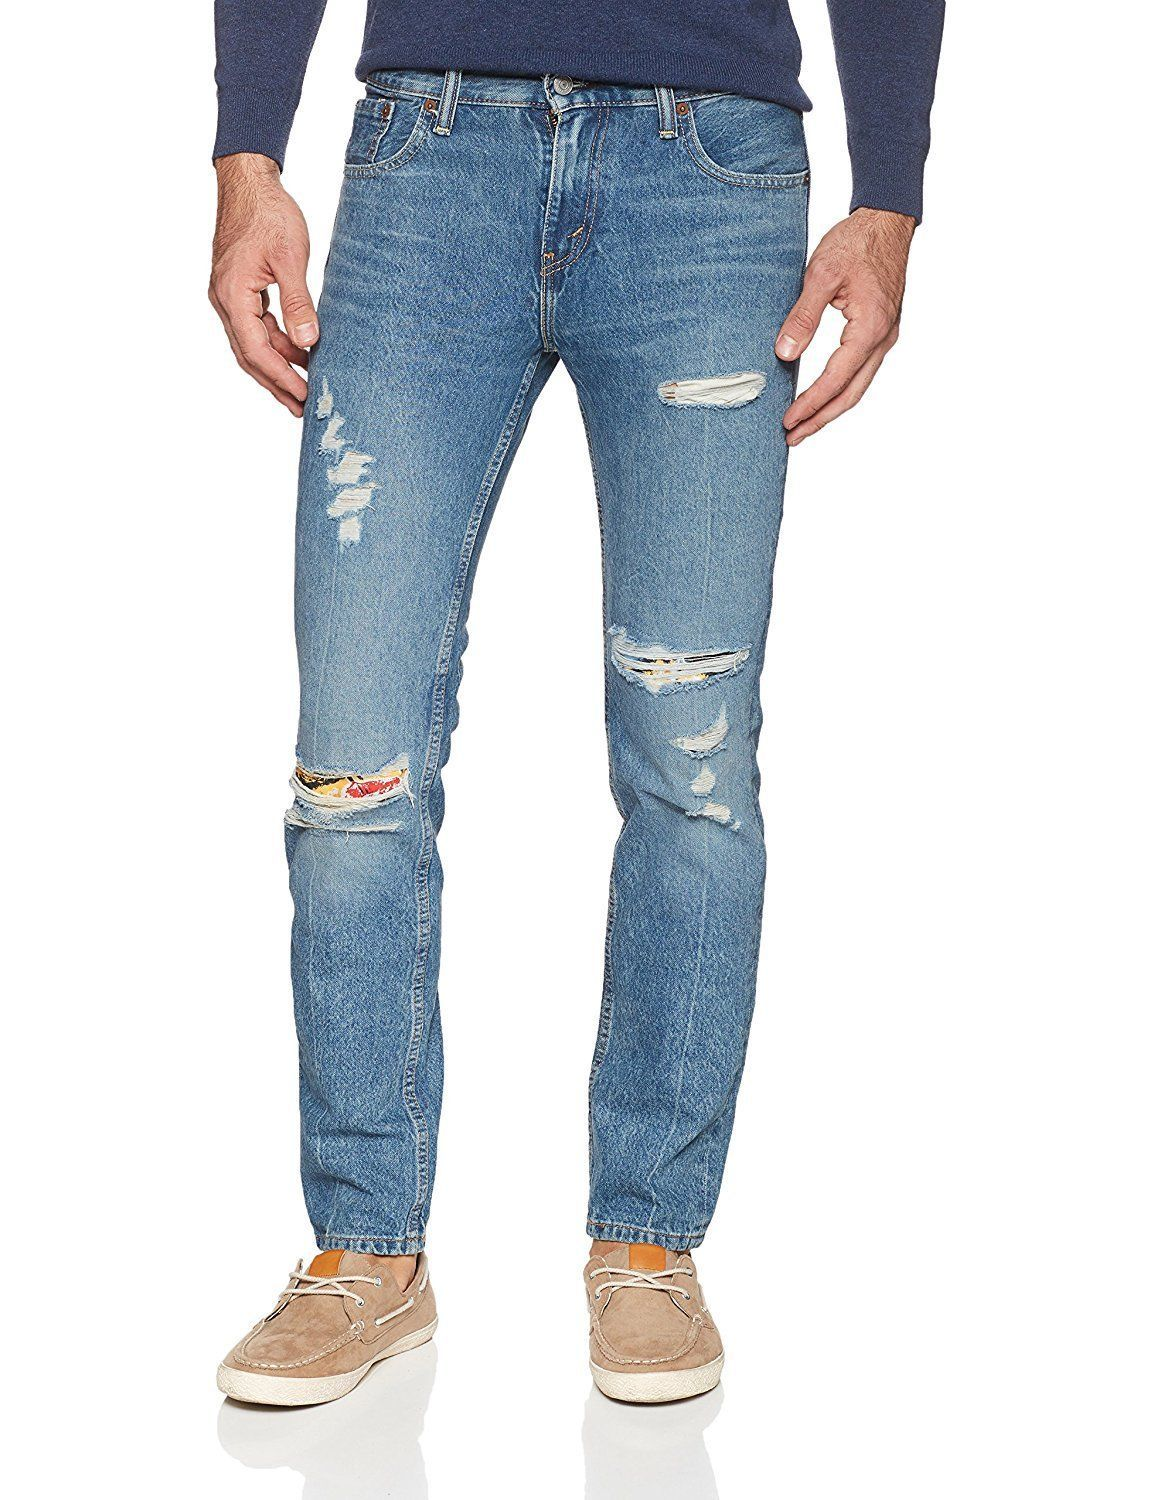 Levi's Strauss 511 Men's Destroyed Distressed Slim Fit Stretch Jeans 511-2742